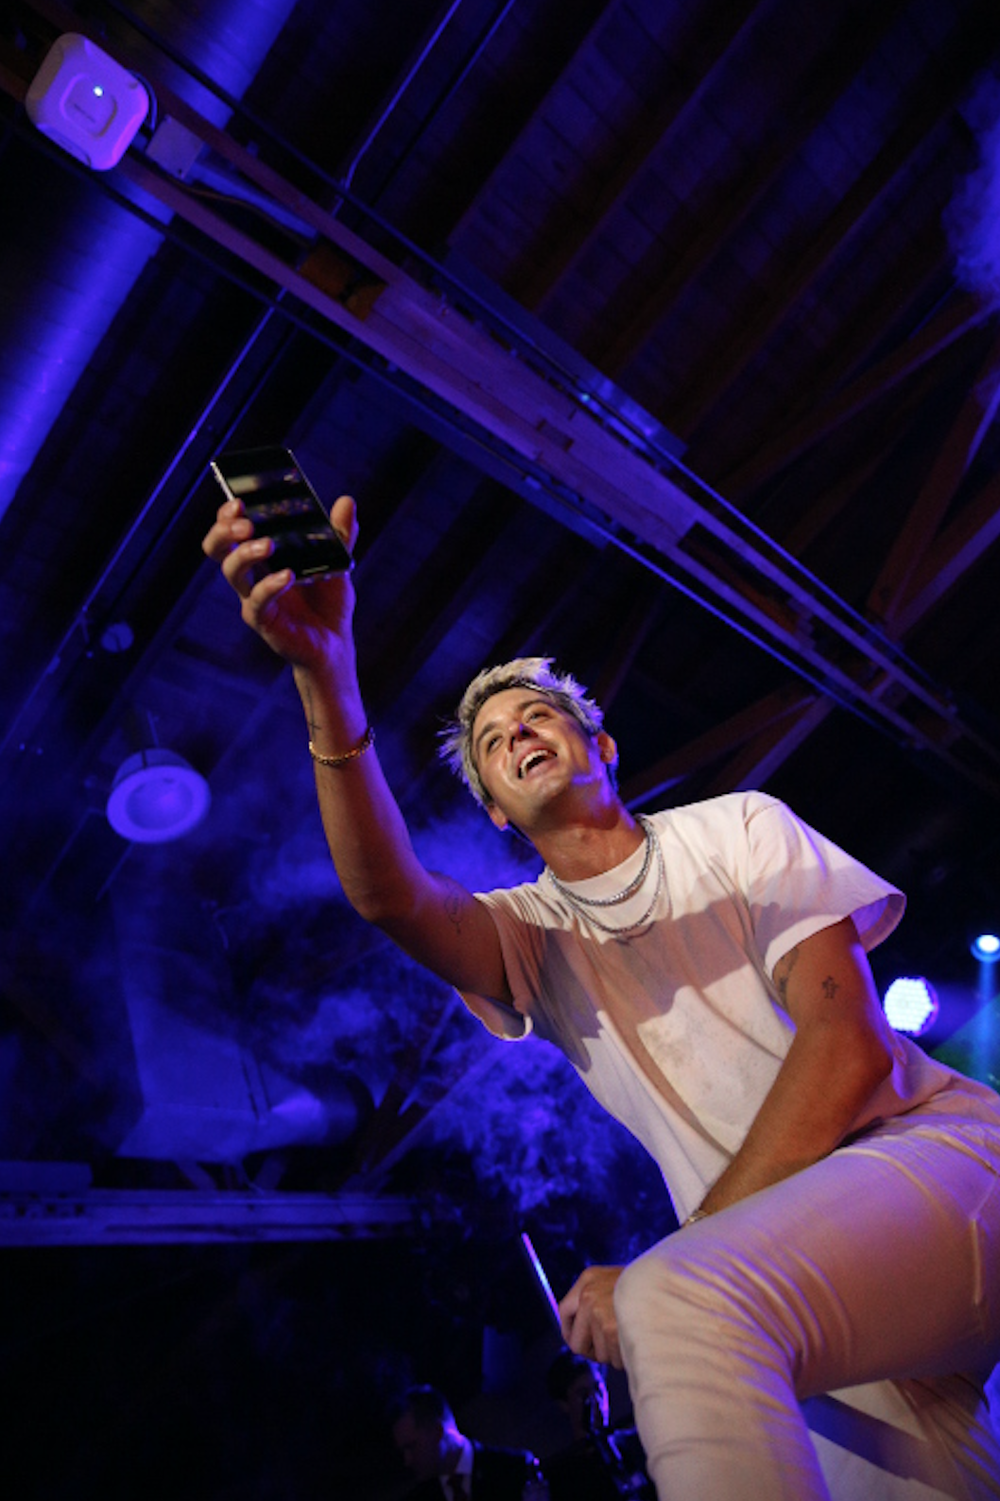 G-Eazy was animated with the crowd while performing at  The Kandy Halloween Party produced by Karma International  over the weekend in Hollywood, CA, which was sponsored by  Heineken  and  Luc Belaire .